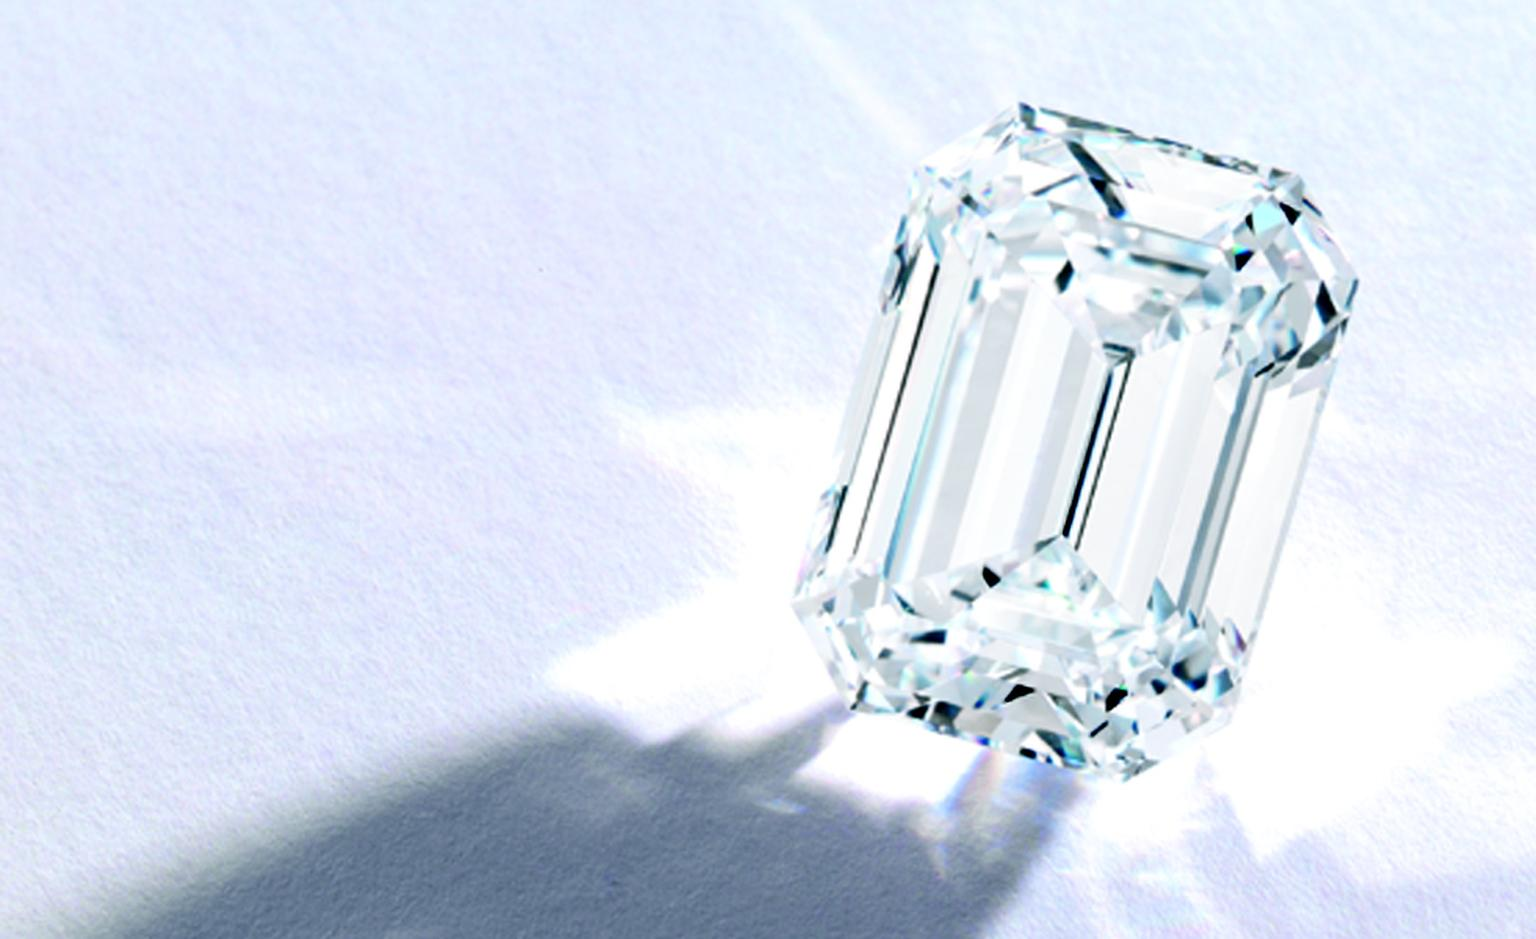 Lot 383 A Magnificent Emerald-Cut Diamond 30.52 carat DVVF 1  Est. $3/4 million. SOLD FOR $3,386,500